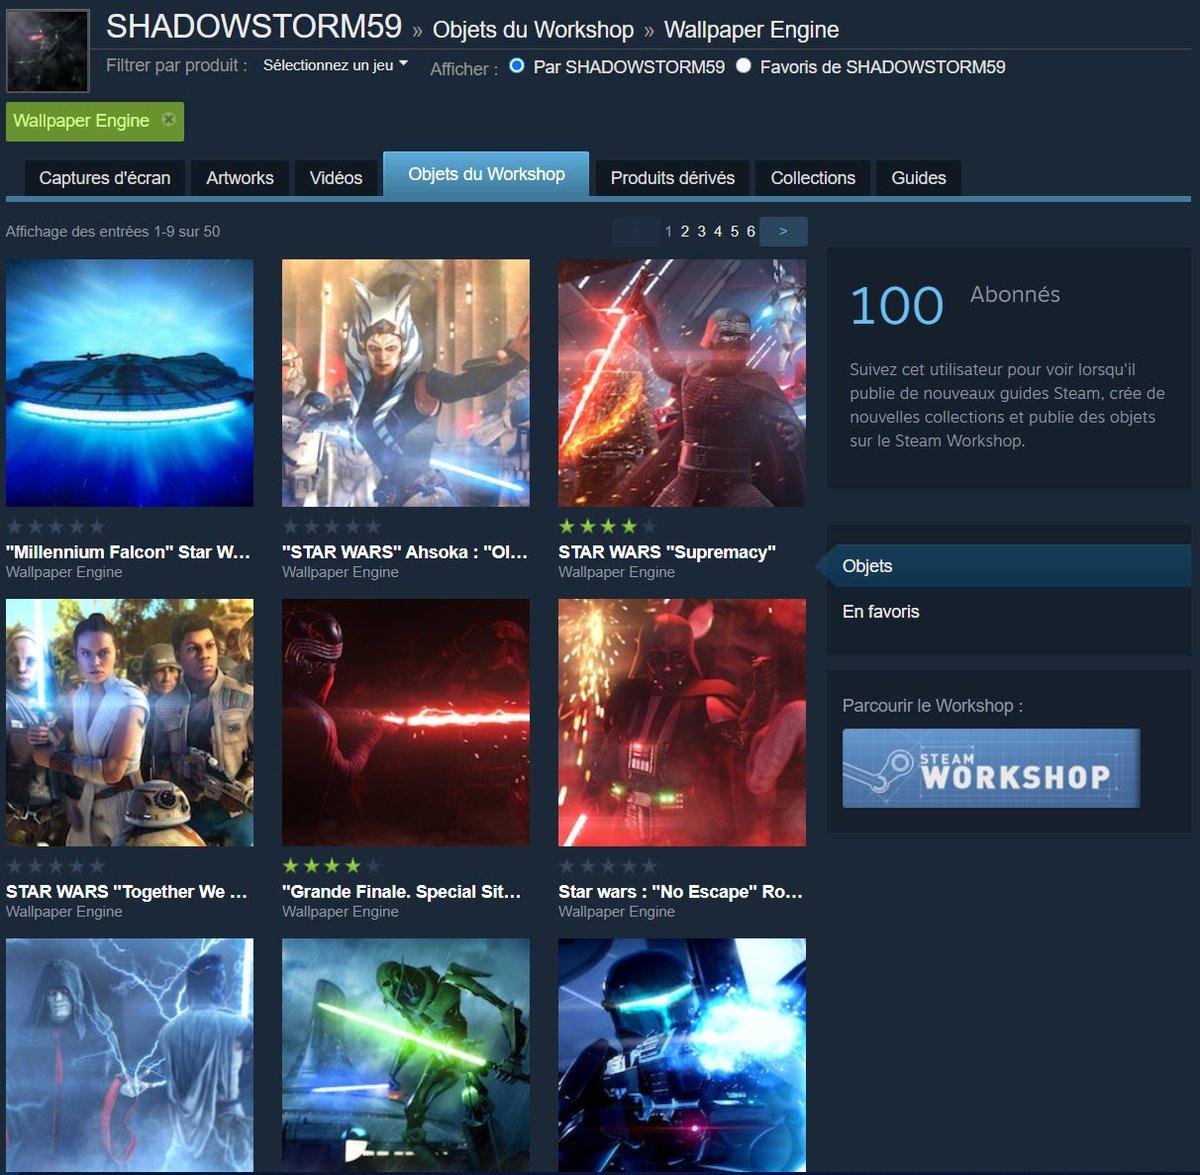 Shadowstorm59 On Twitter I Reached 100 Followers On Steam Today For My Live Wallpapers Some Have Thousands Of Downloads Thank You Starwars Https T Co Ydk5p7iqts